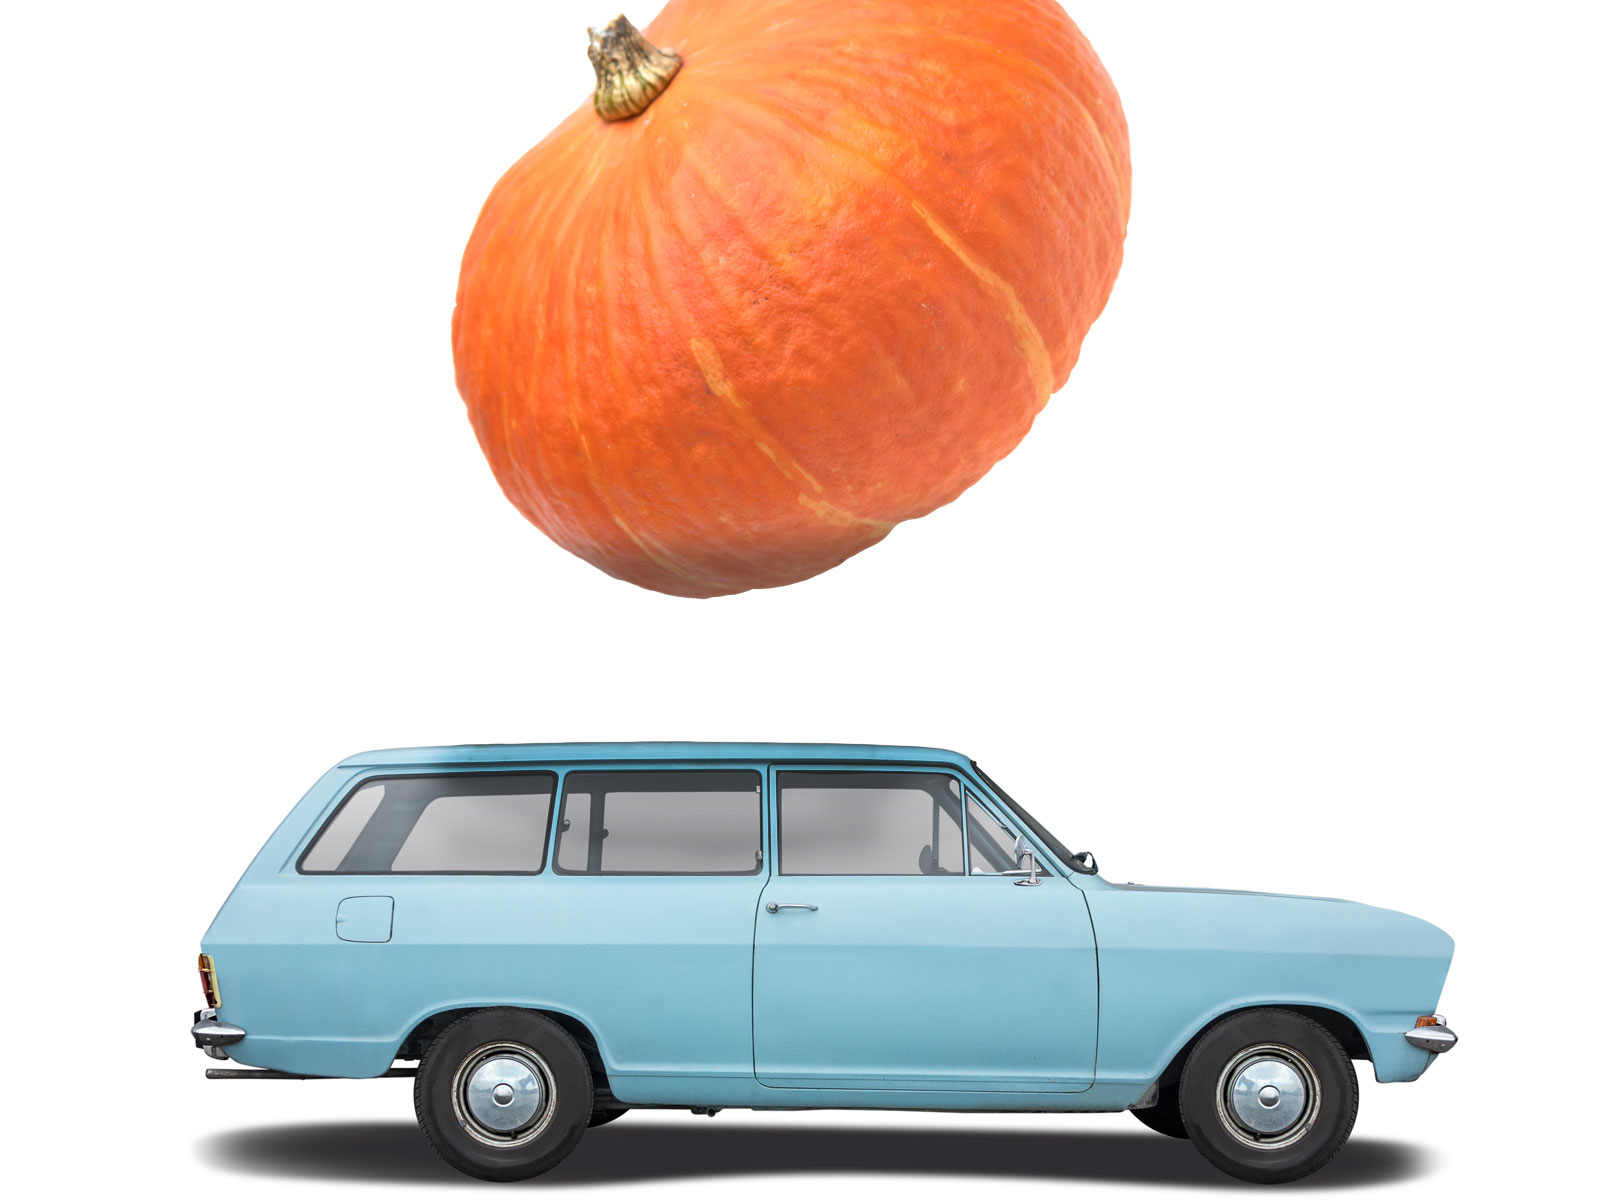 smashing-cars-pumpkins-FT-BLOG1018.jpg